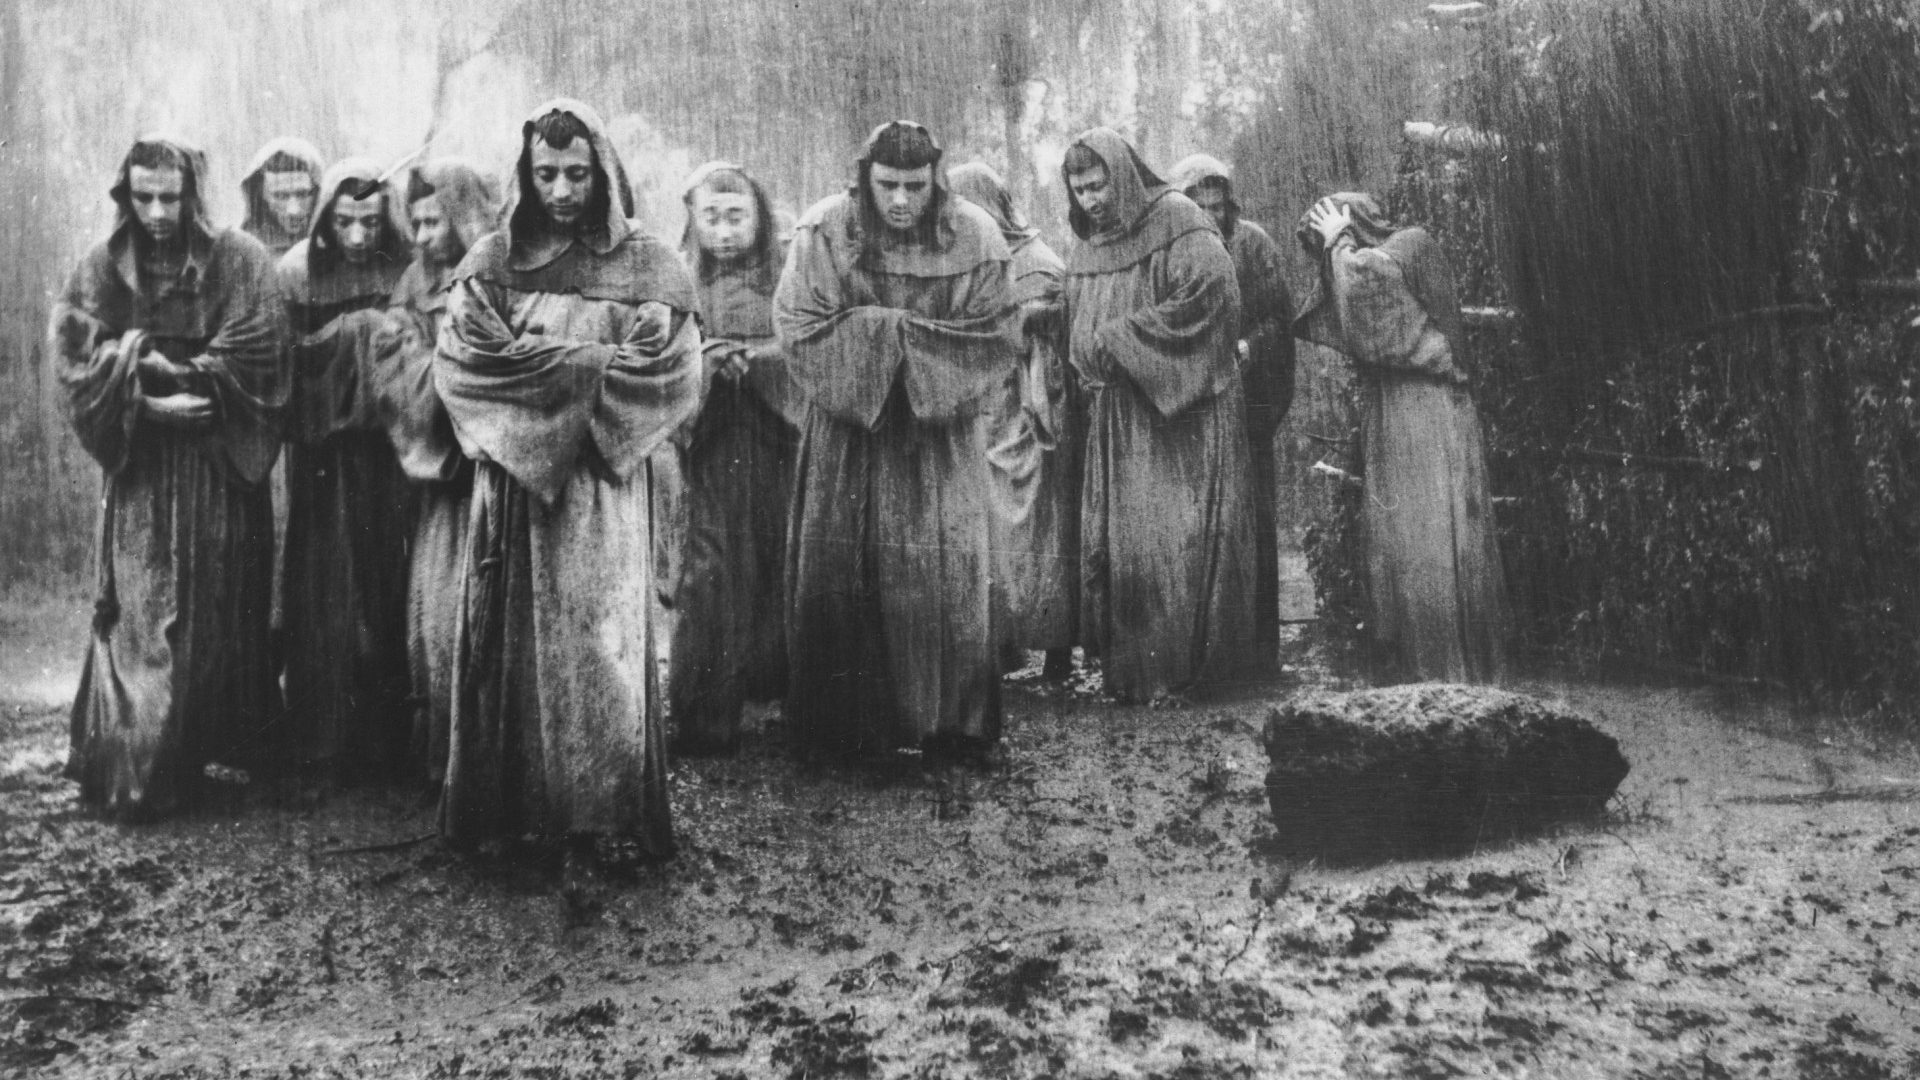 The Flowers of St. Francis (1950) by ROBERTO ROSSELLINI